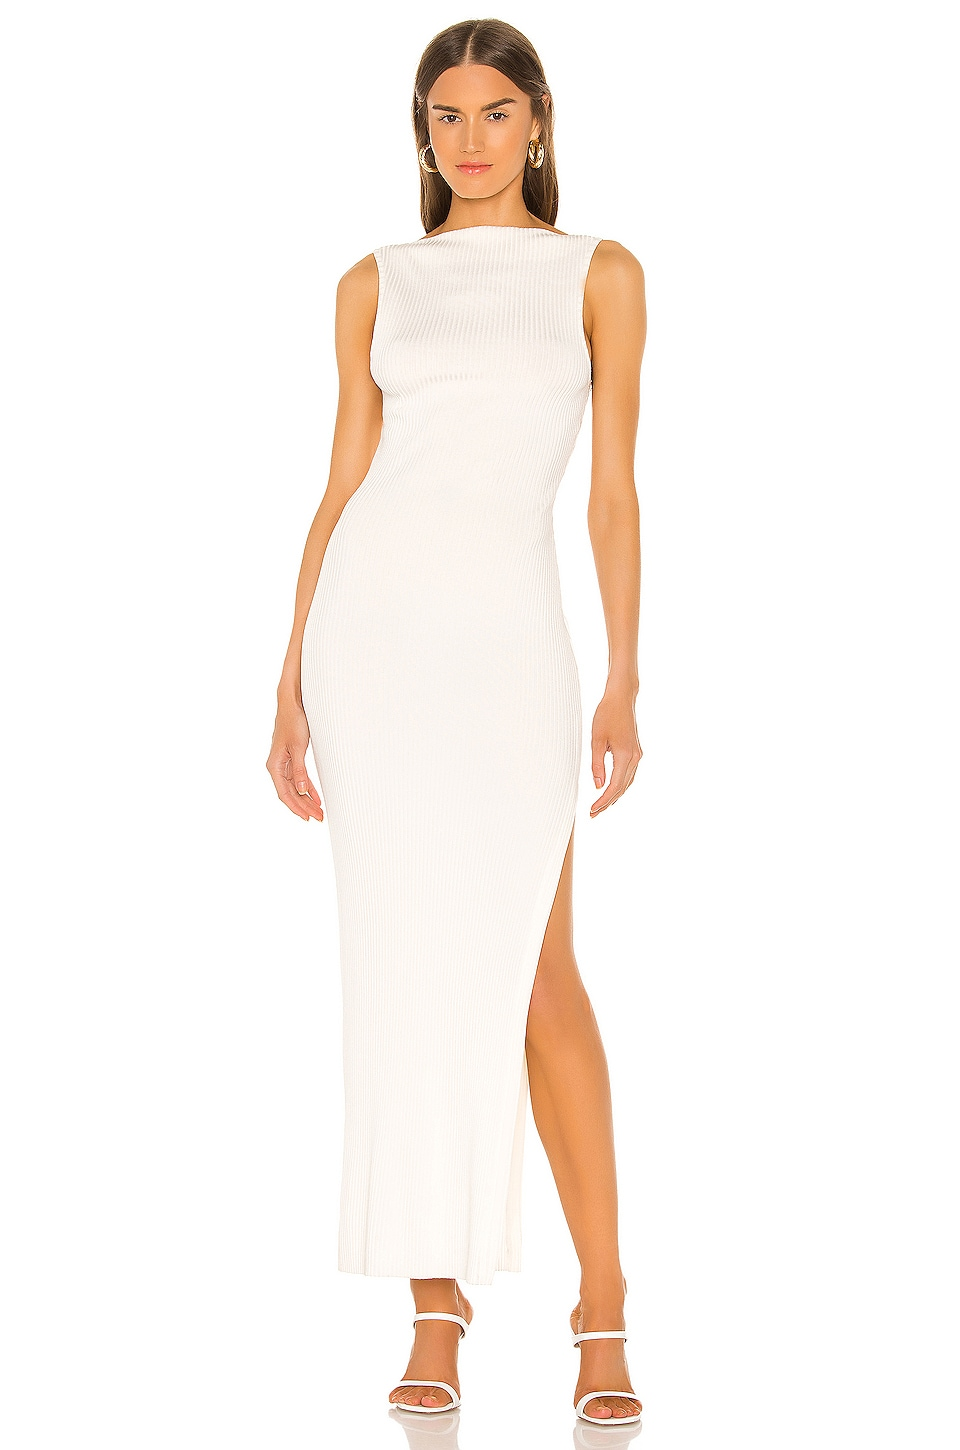 Bec Bridge Noir Et Blanc Midi Dress In Ivory Revolve 2.8 out of 5 stars from 18 genuine reviews on australia's largest opinion site productreview.com.au. bec bridge